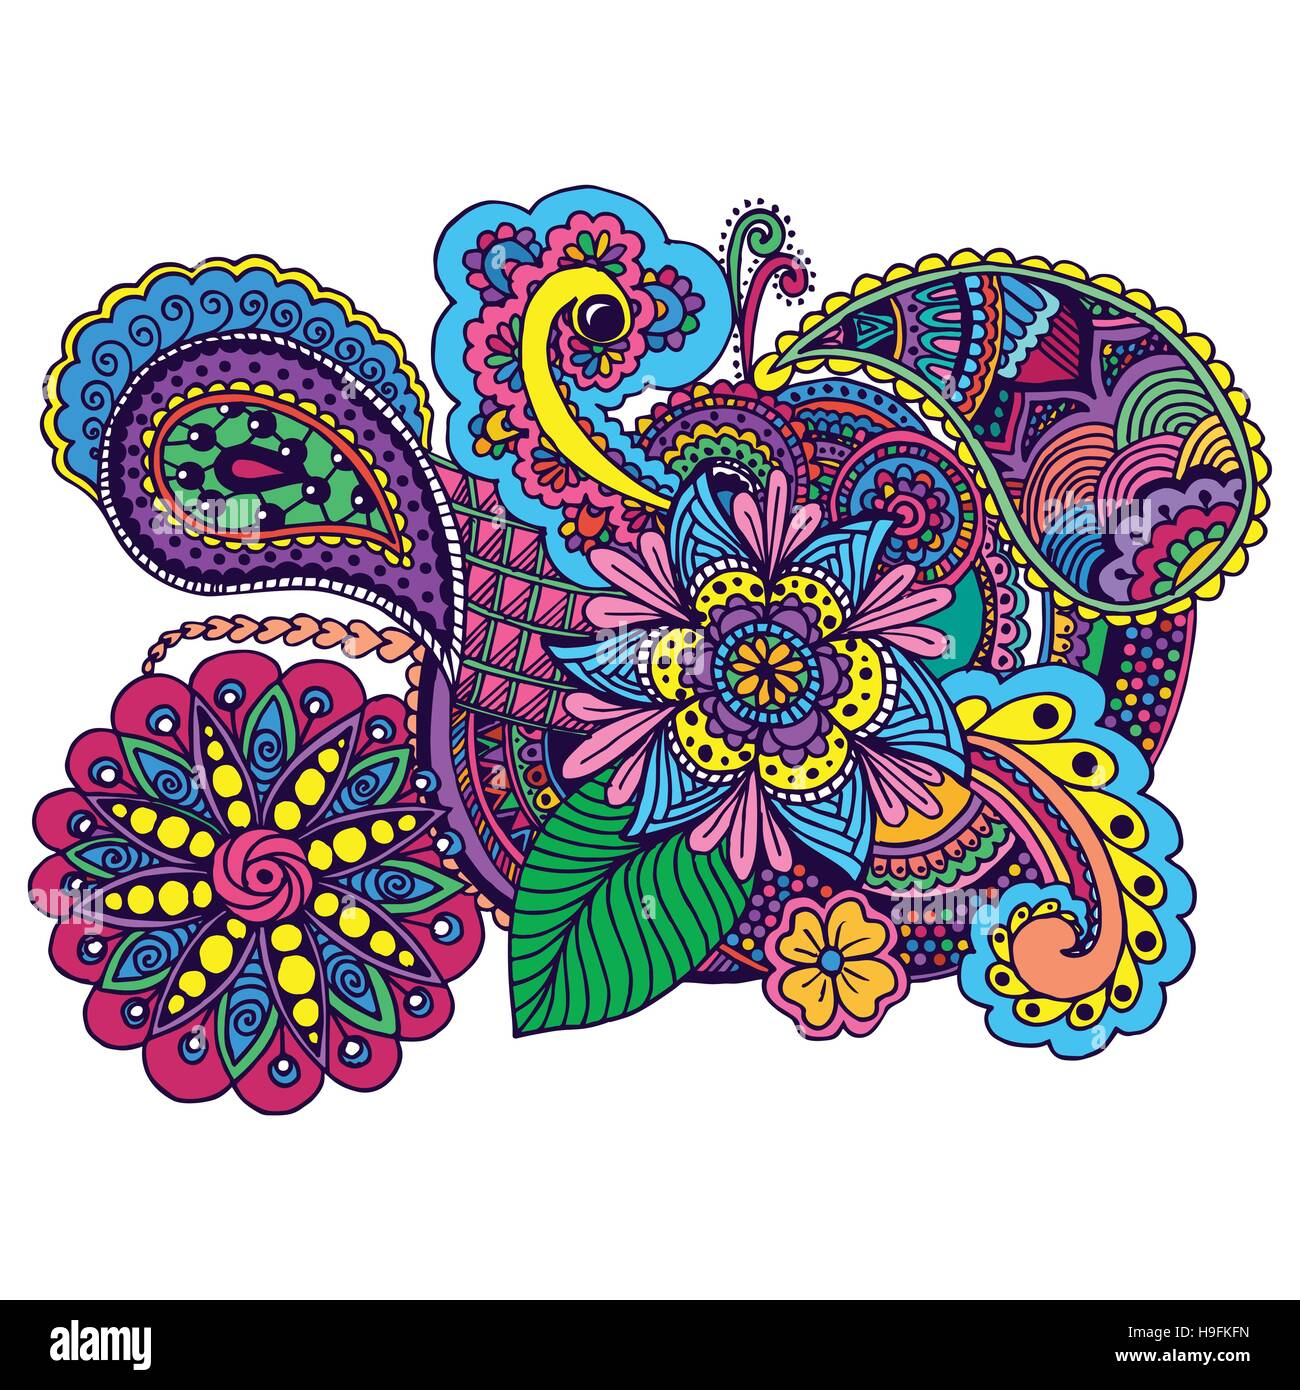 Hand Drawn Colored Doodle Antistress Zentangle Design